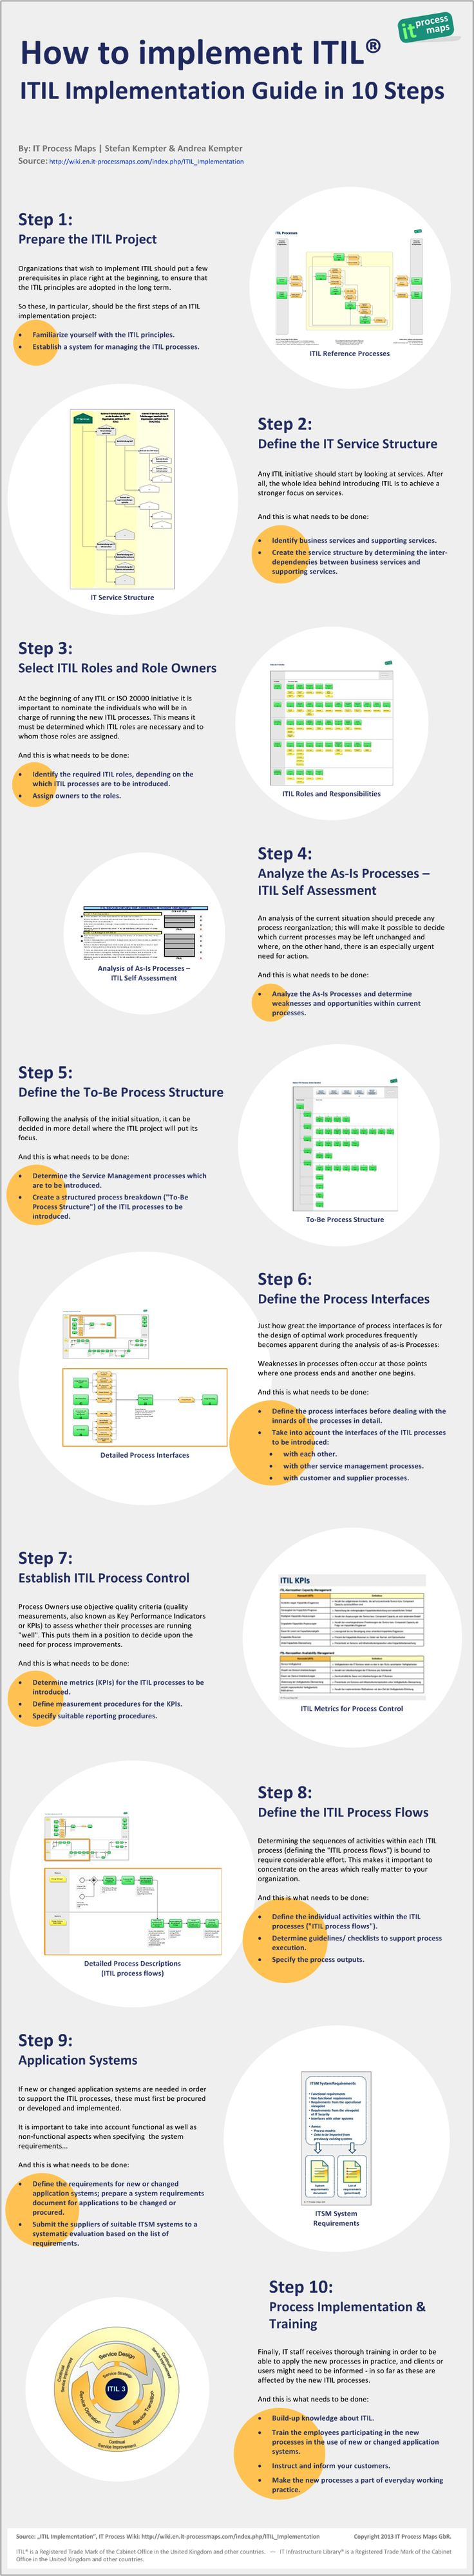 "Infographic ""ITIL Implementation Guide in 10 Steps"". [http://wiki.en.it-processmaps.com/index.php/ITIL_Implementation/_Infographic] -- The infographic is based on our #ITIL implementation guide which provides you with valuable information on how to set up and carry out ITIL projects, #ITSM projects or #ISO20000 initiatives: [http://wiki.en.it-processmaps.com/index.php/ITIL_Implementation]"